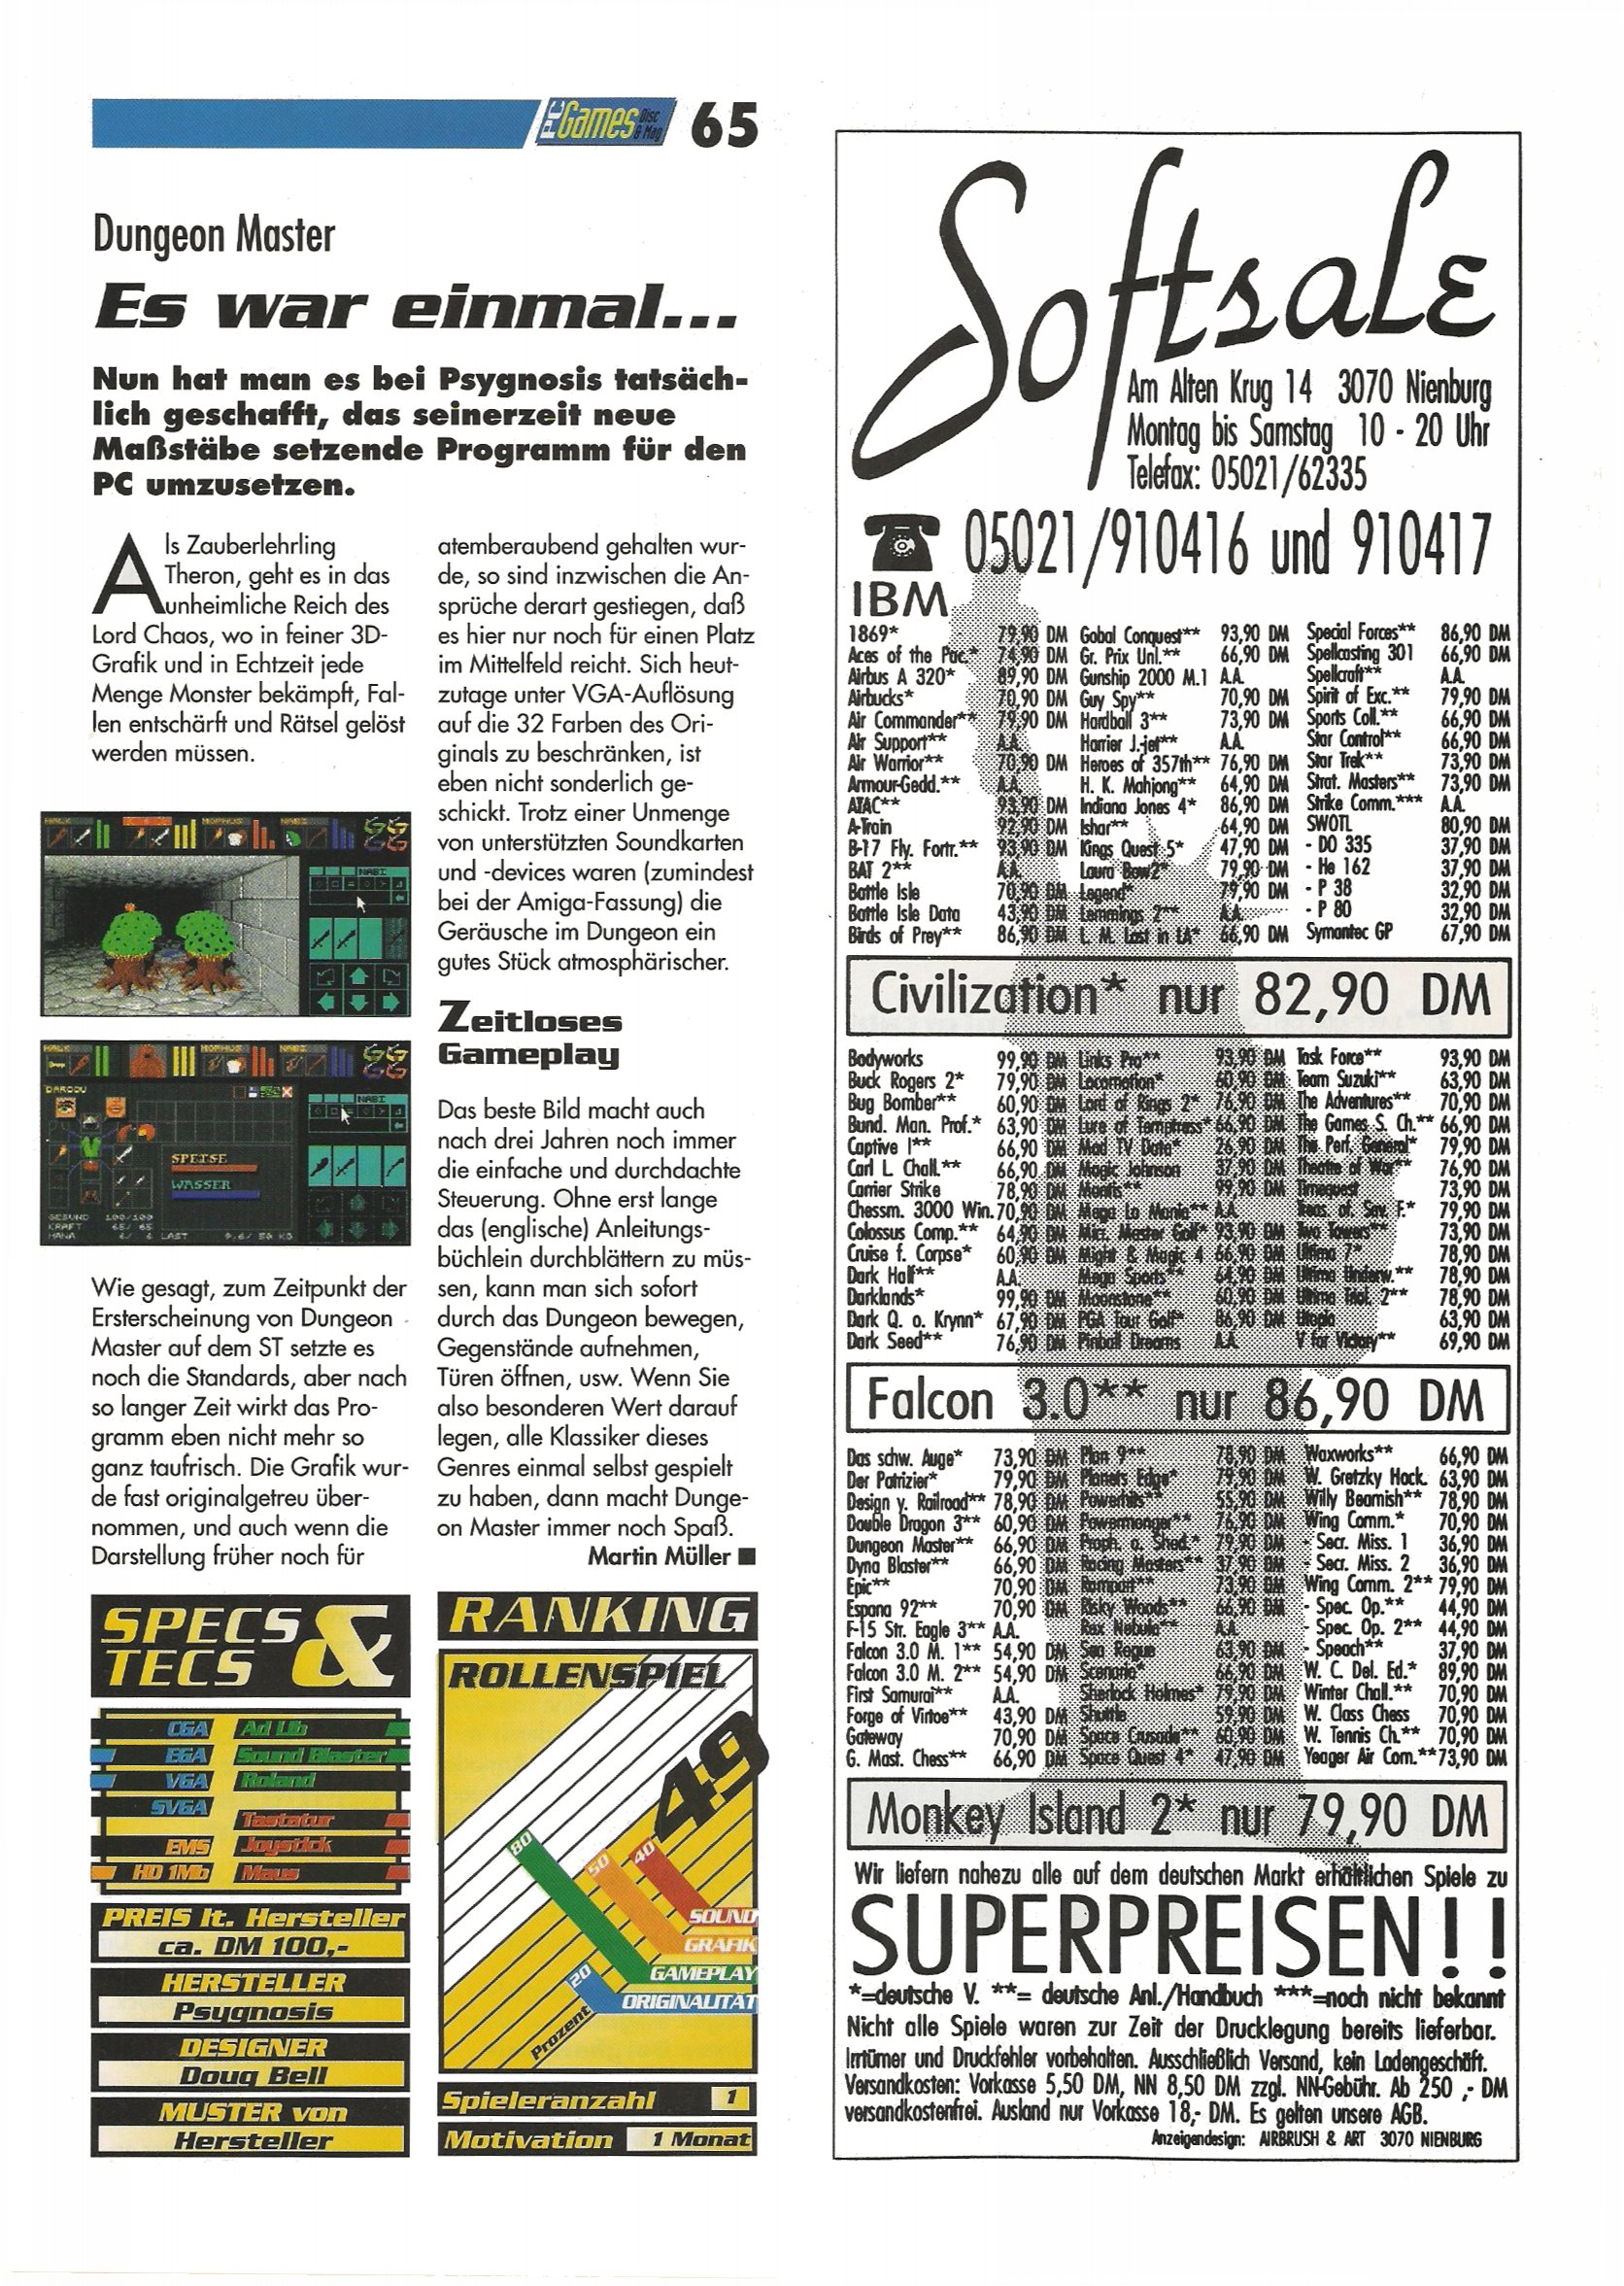 Dungeon Master for PC Review published in German magazine 'PC Games', October 1992, Page 65